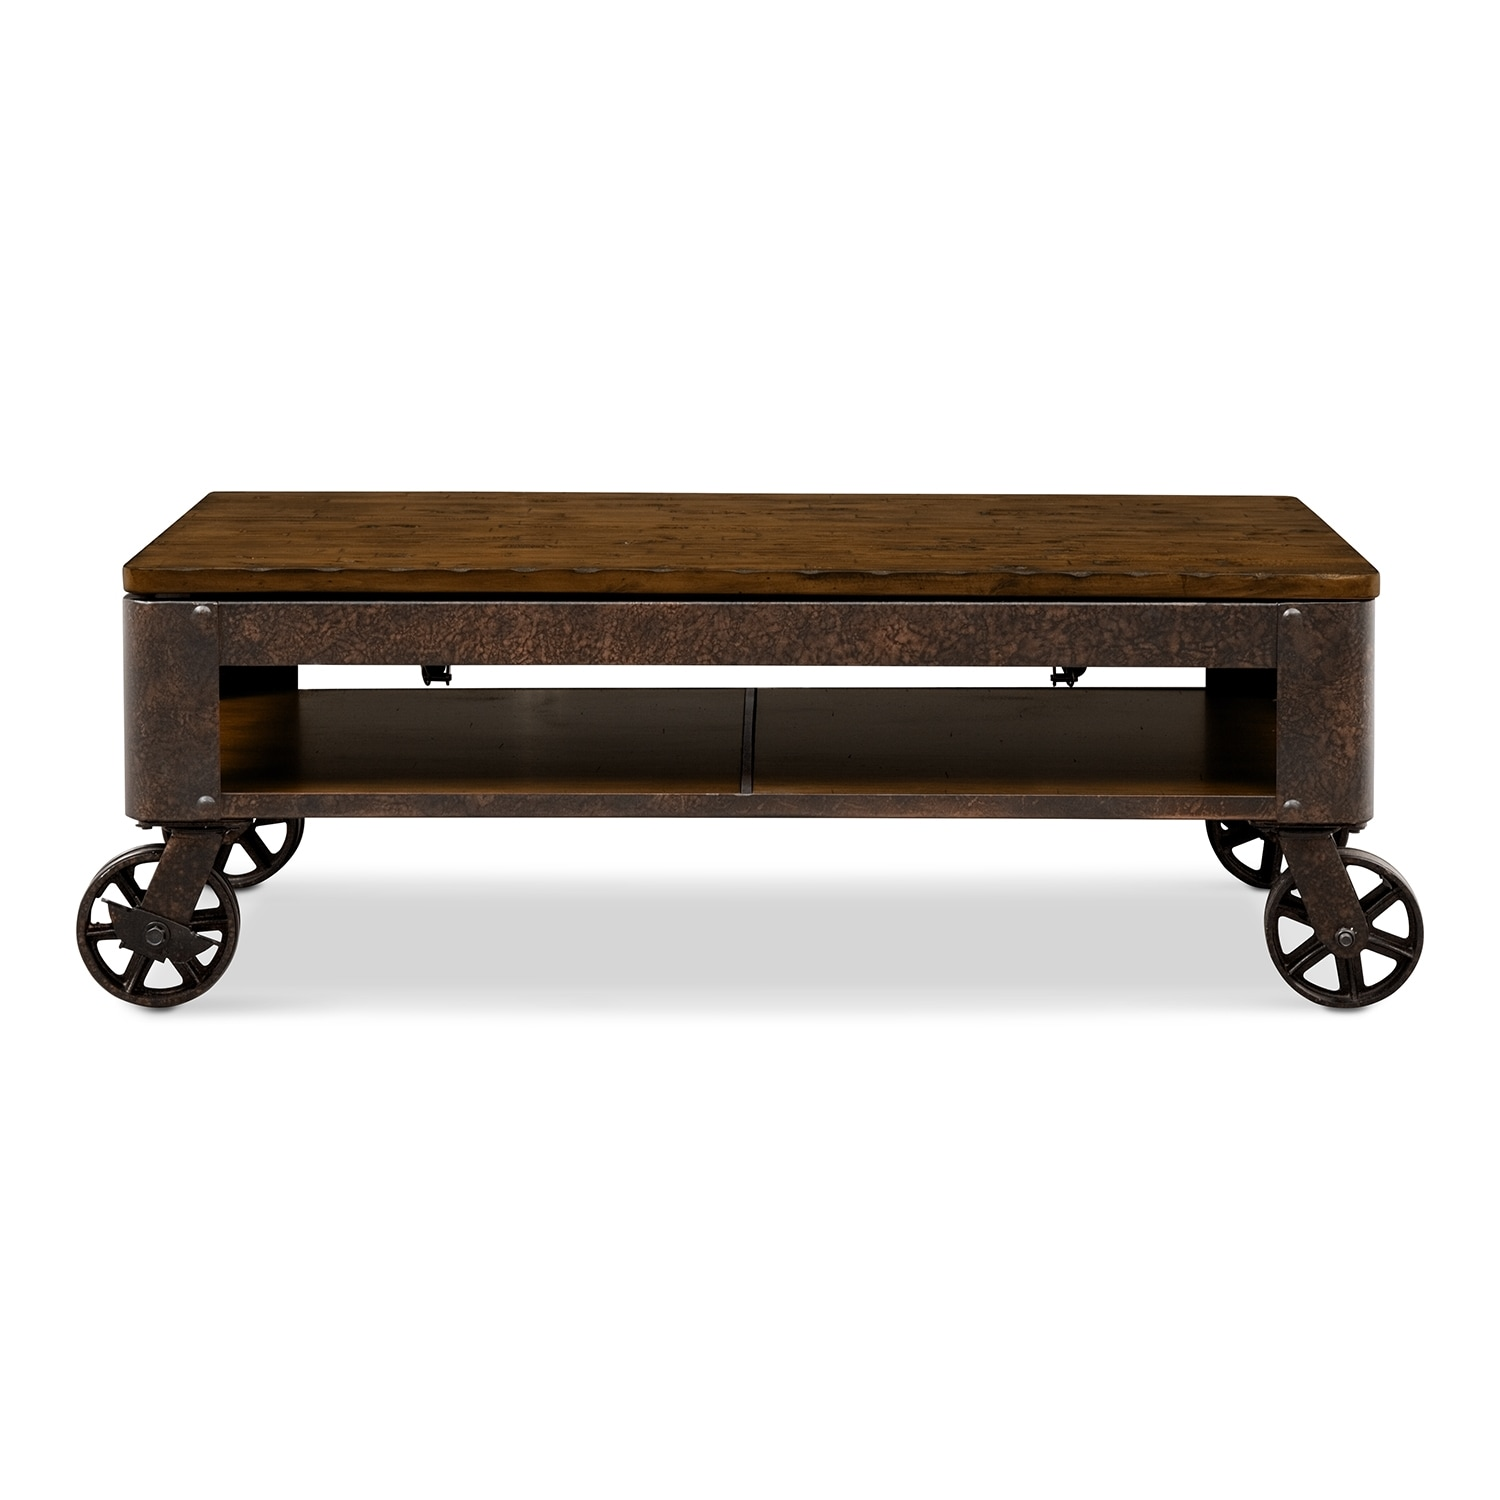 Shortline Lift Top Cocktail Table American Signature Furniture: lifting top coffee table